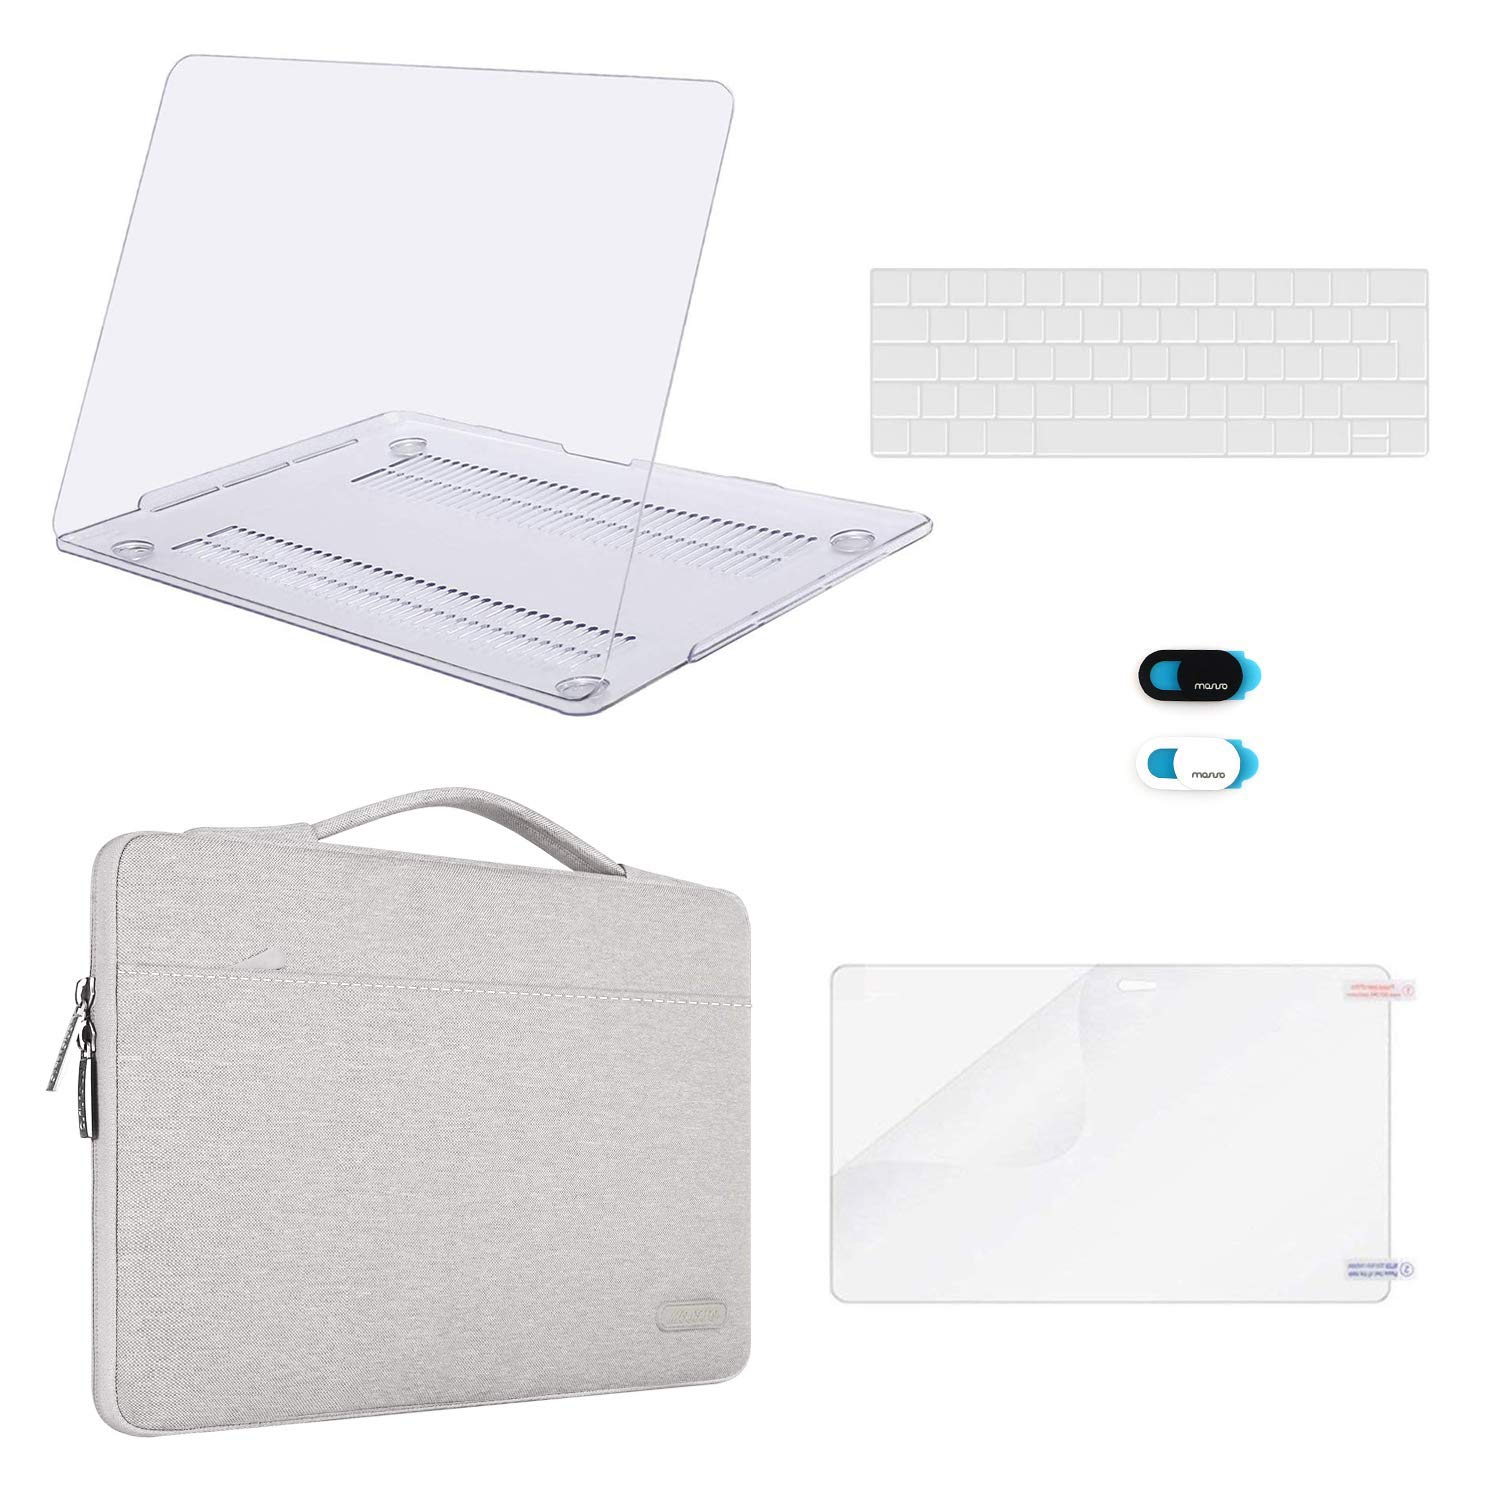 MOSISO MacBook Pro 13 inch Case 2016-2019 A2159 A1989 A1706 A1708 Plastic Hard Case /& Sleeve Bag /& Keyboard Cover /& Webcam Cover /& Screen Protector Compatible with MacBook Pro 13 Clear/&Gray